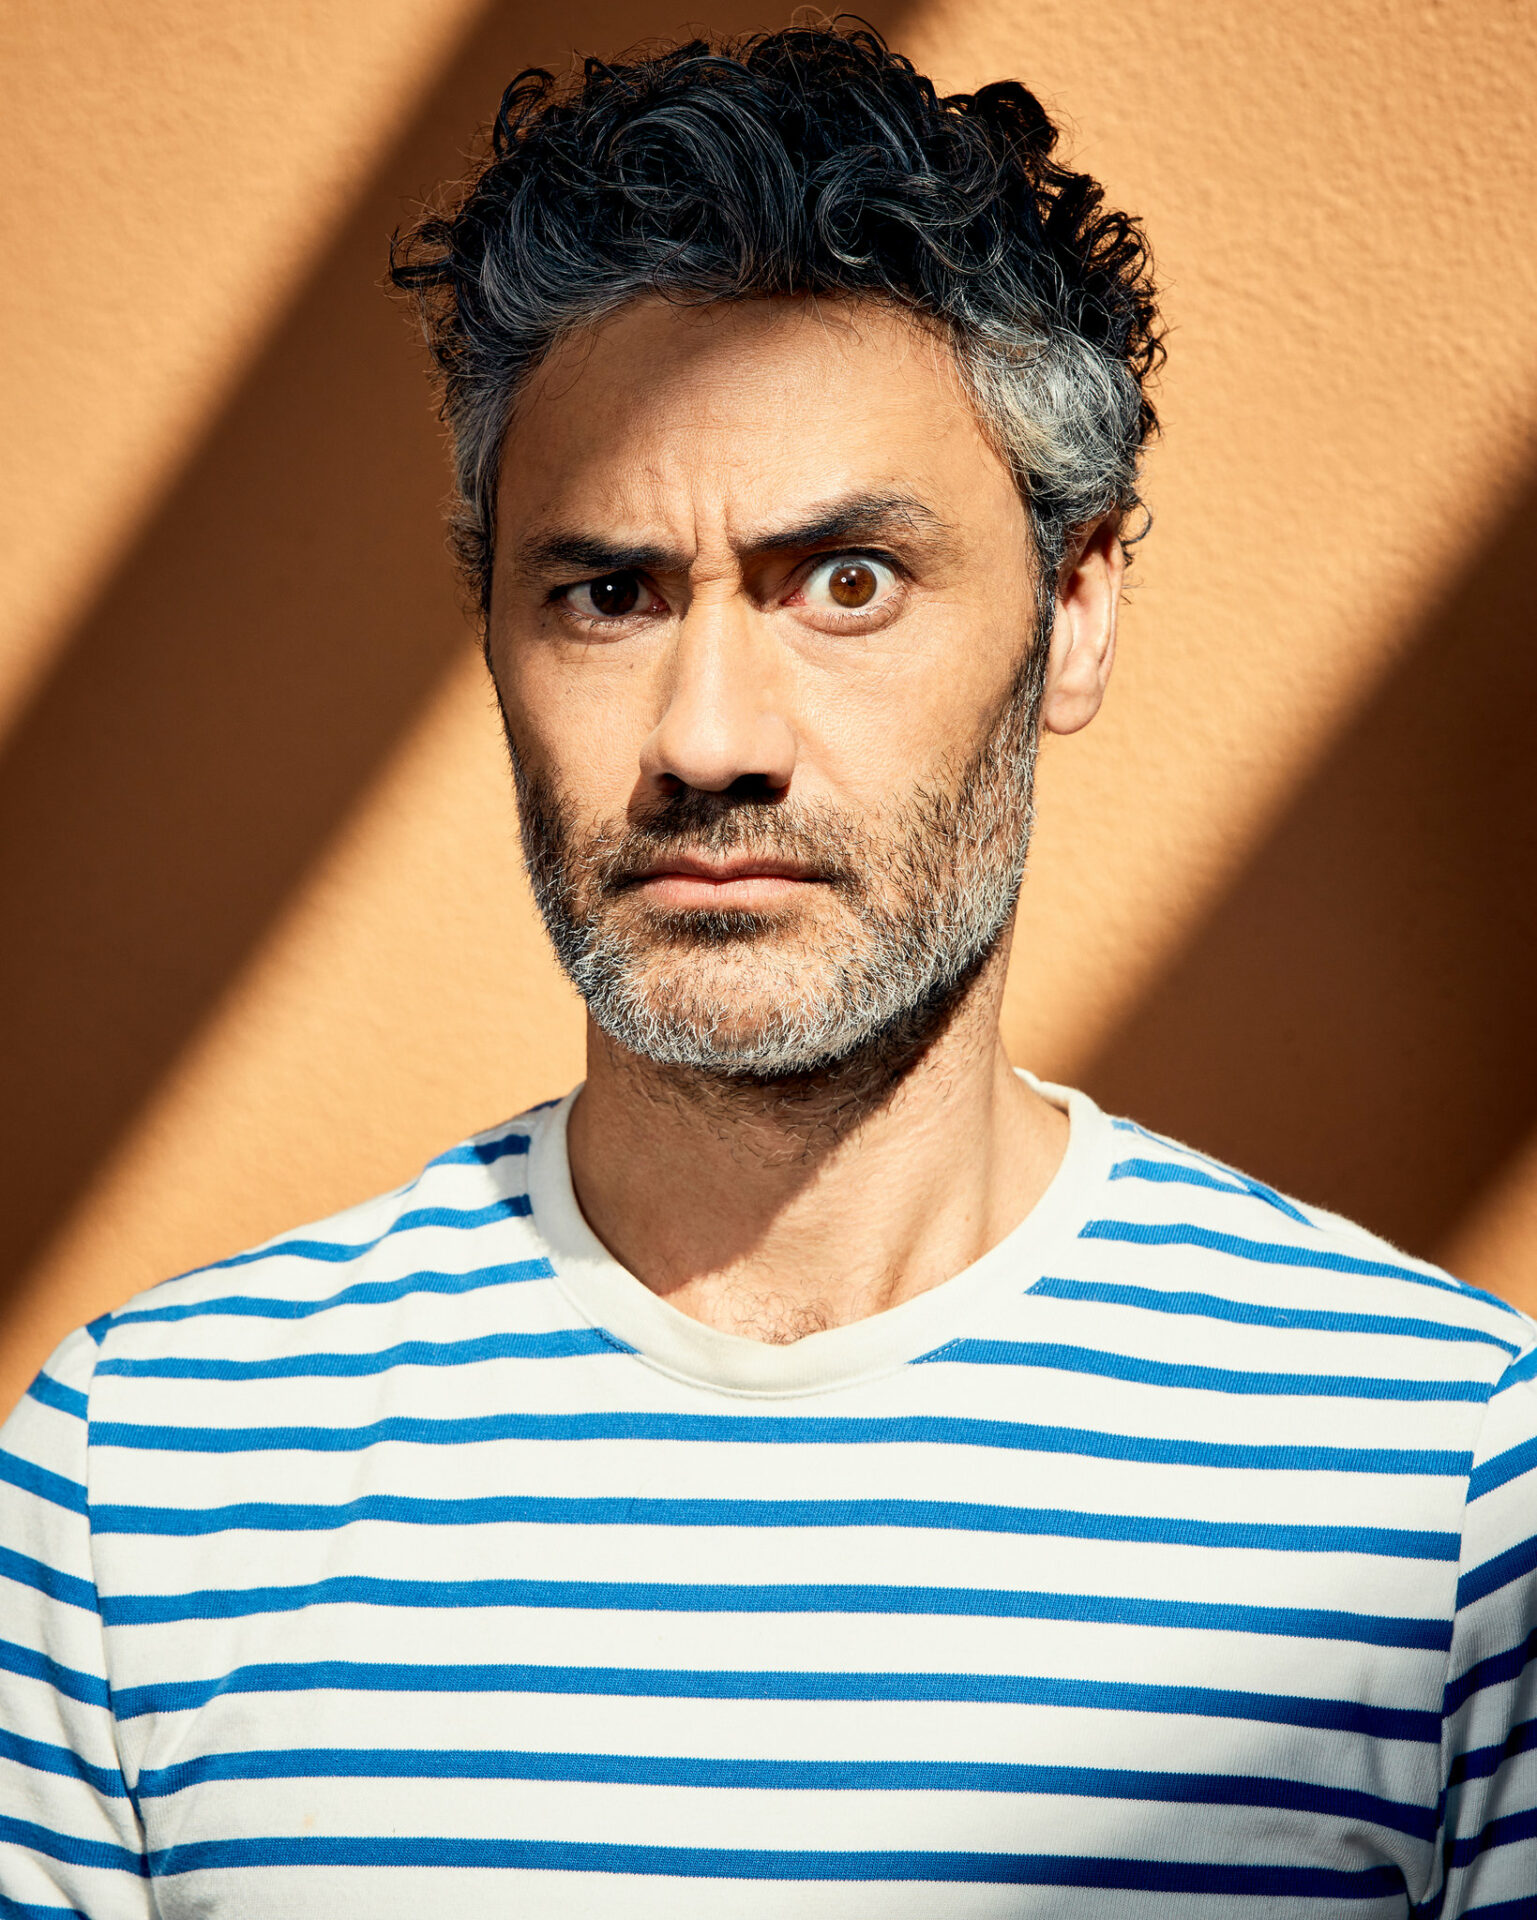 In this image, Taika Waititi is raising one eyebrow at the camera. He is earing a blue and white striped shirt and behind him is a bright orange wall.